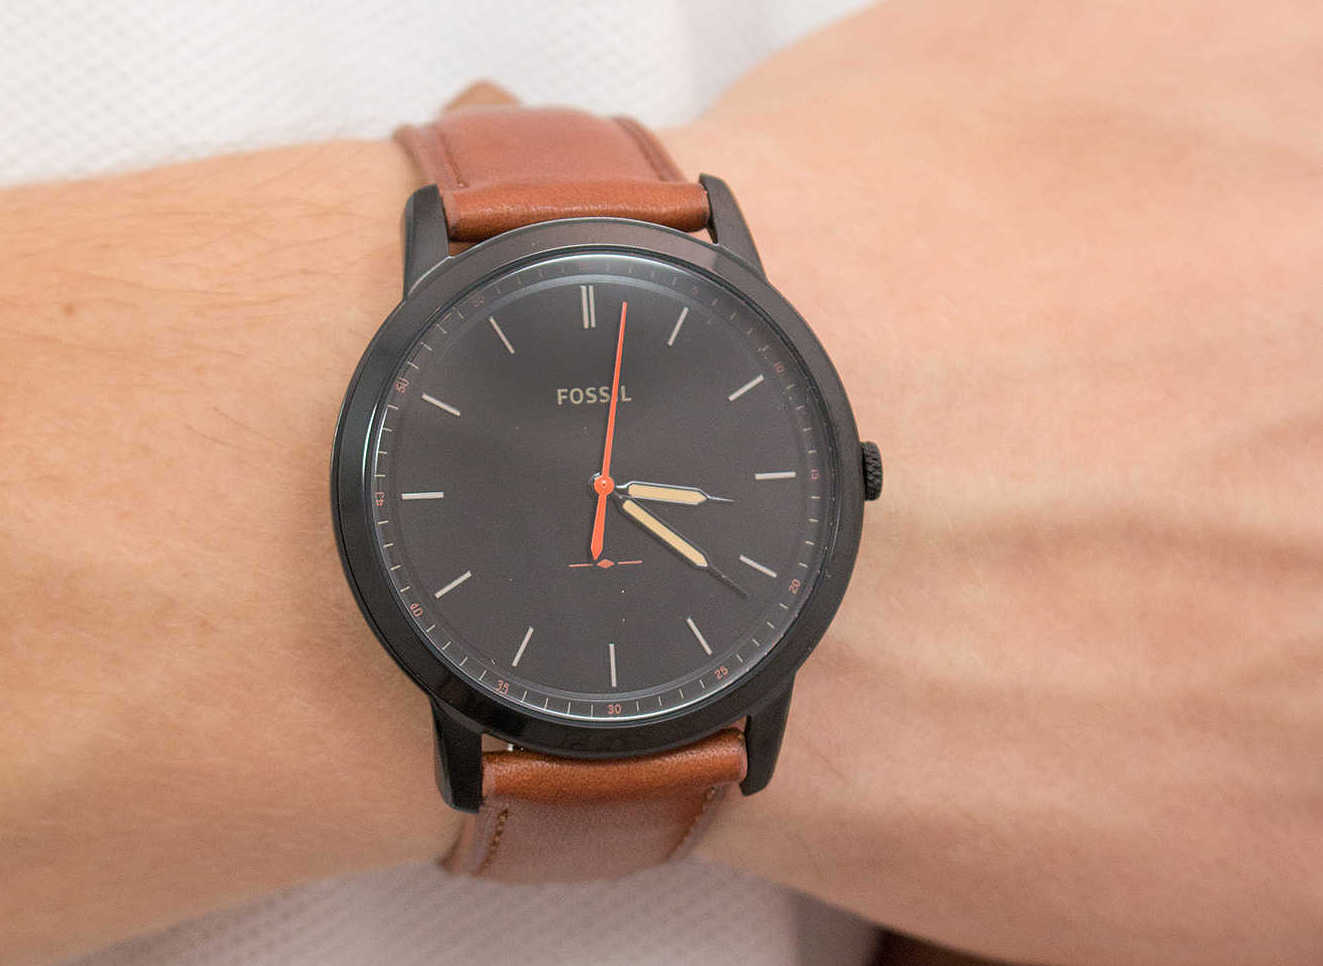 Fossil FS5305 The Minimalist Watch Review